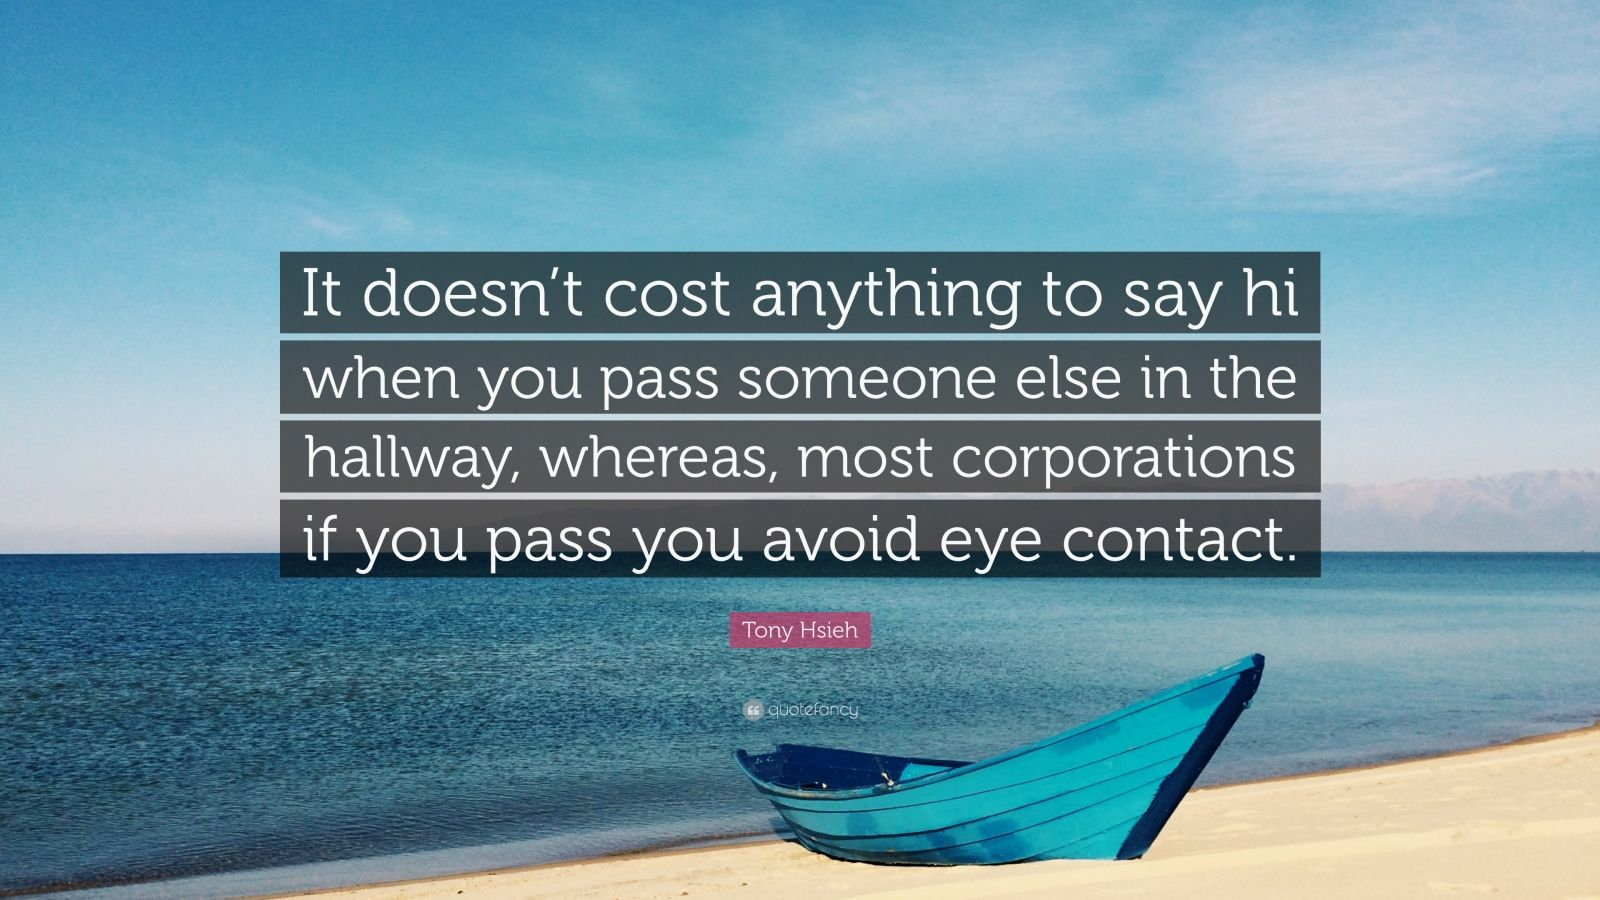 """Tony Hsieh Quote: """"It doesn't cost anything to say hi when you pass someone else in the hallway, whereas, most corporations if you pass you avoid eye contact."""""""